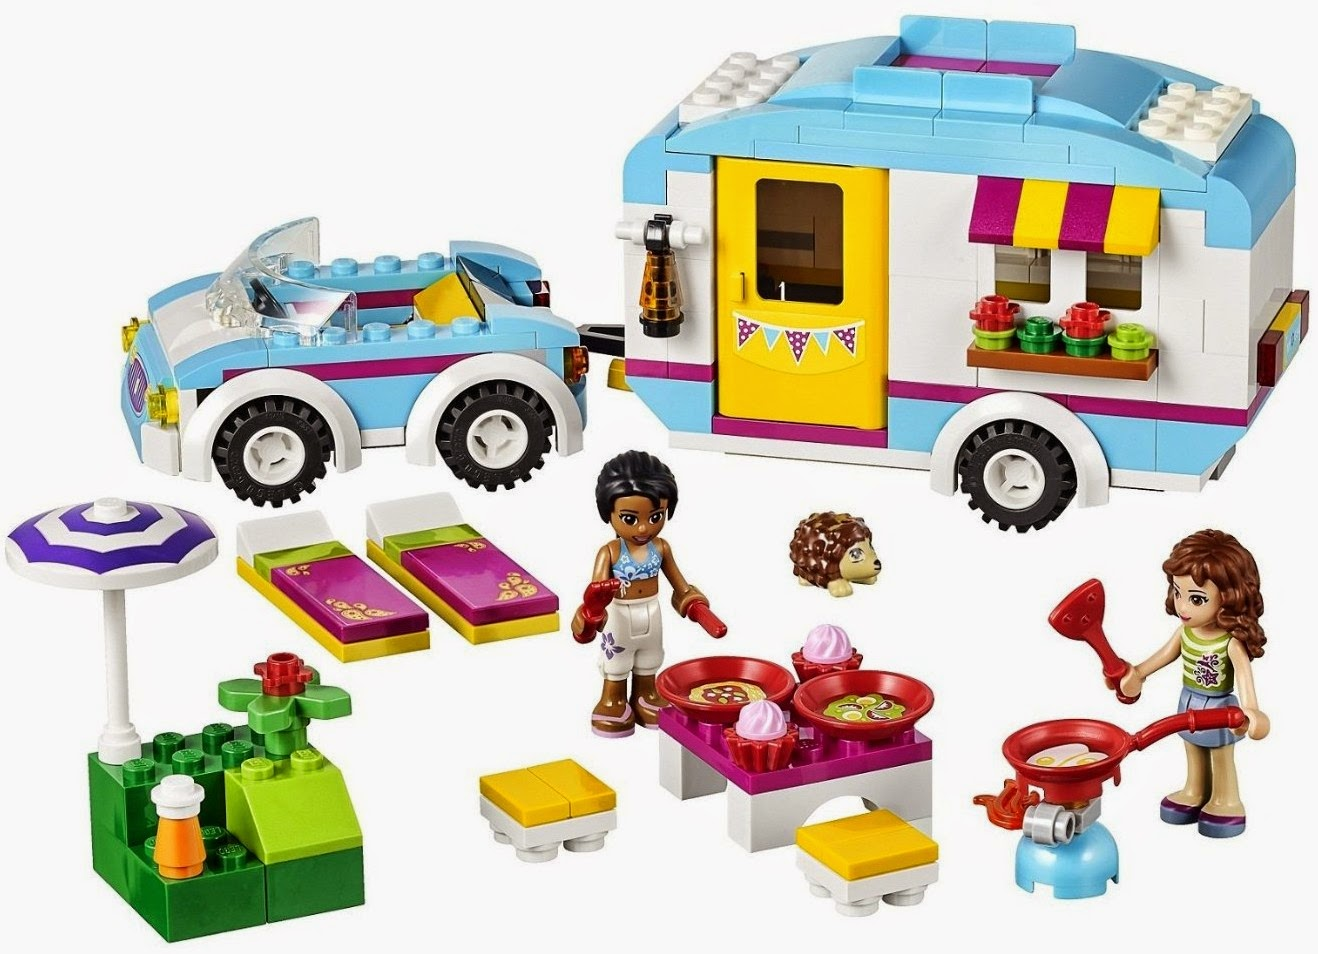 Heartlake times summer 2014 lego friends sets - Lego brick caravan a record built piece by piece ...